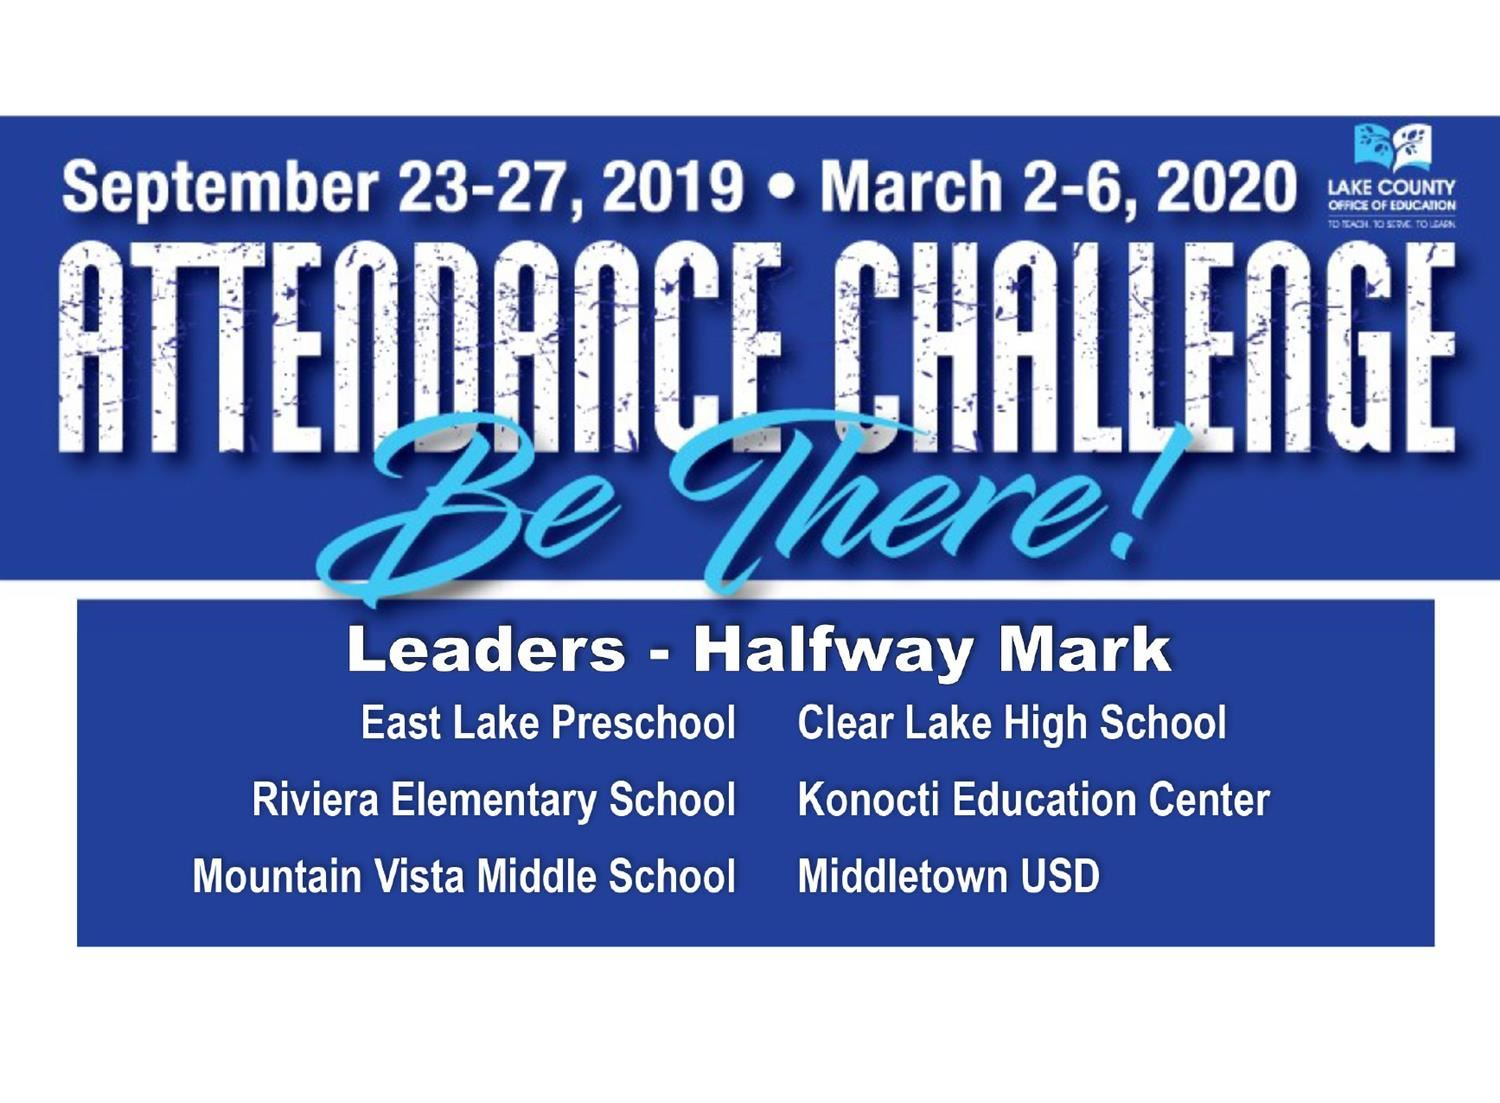 Attendance Challenge Blue Logo with list of winners